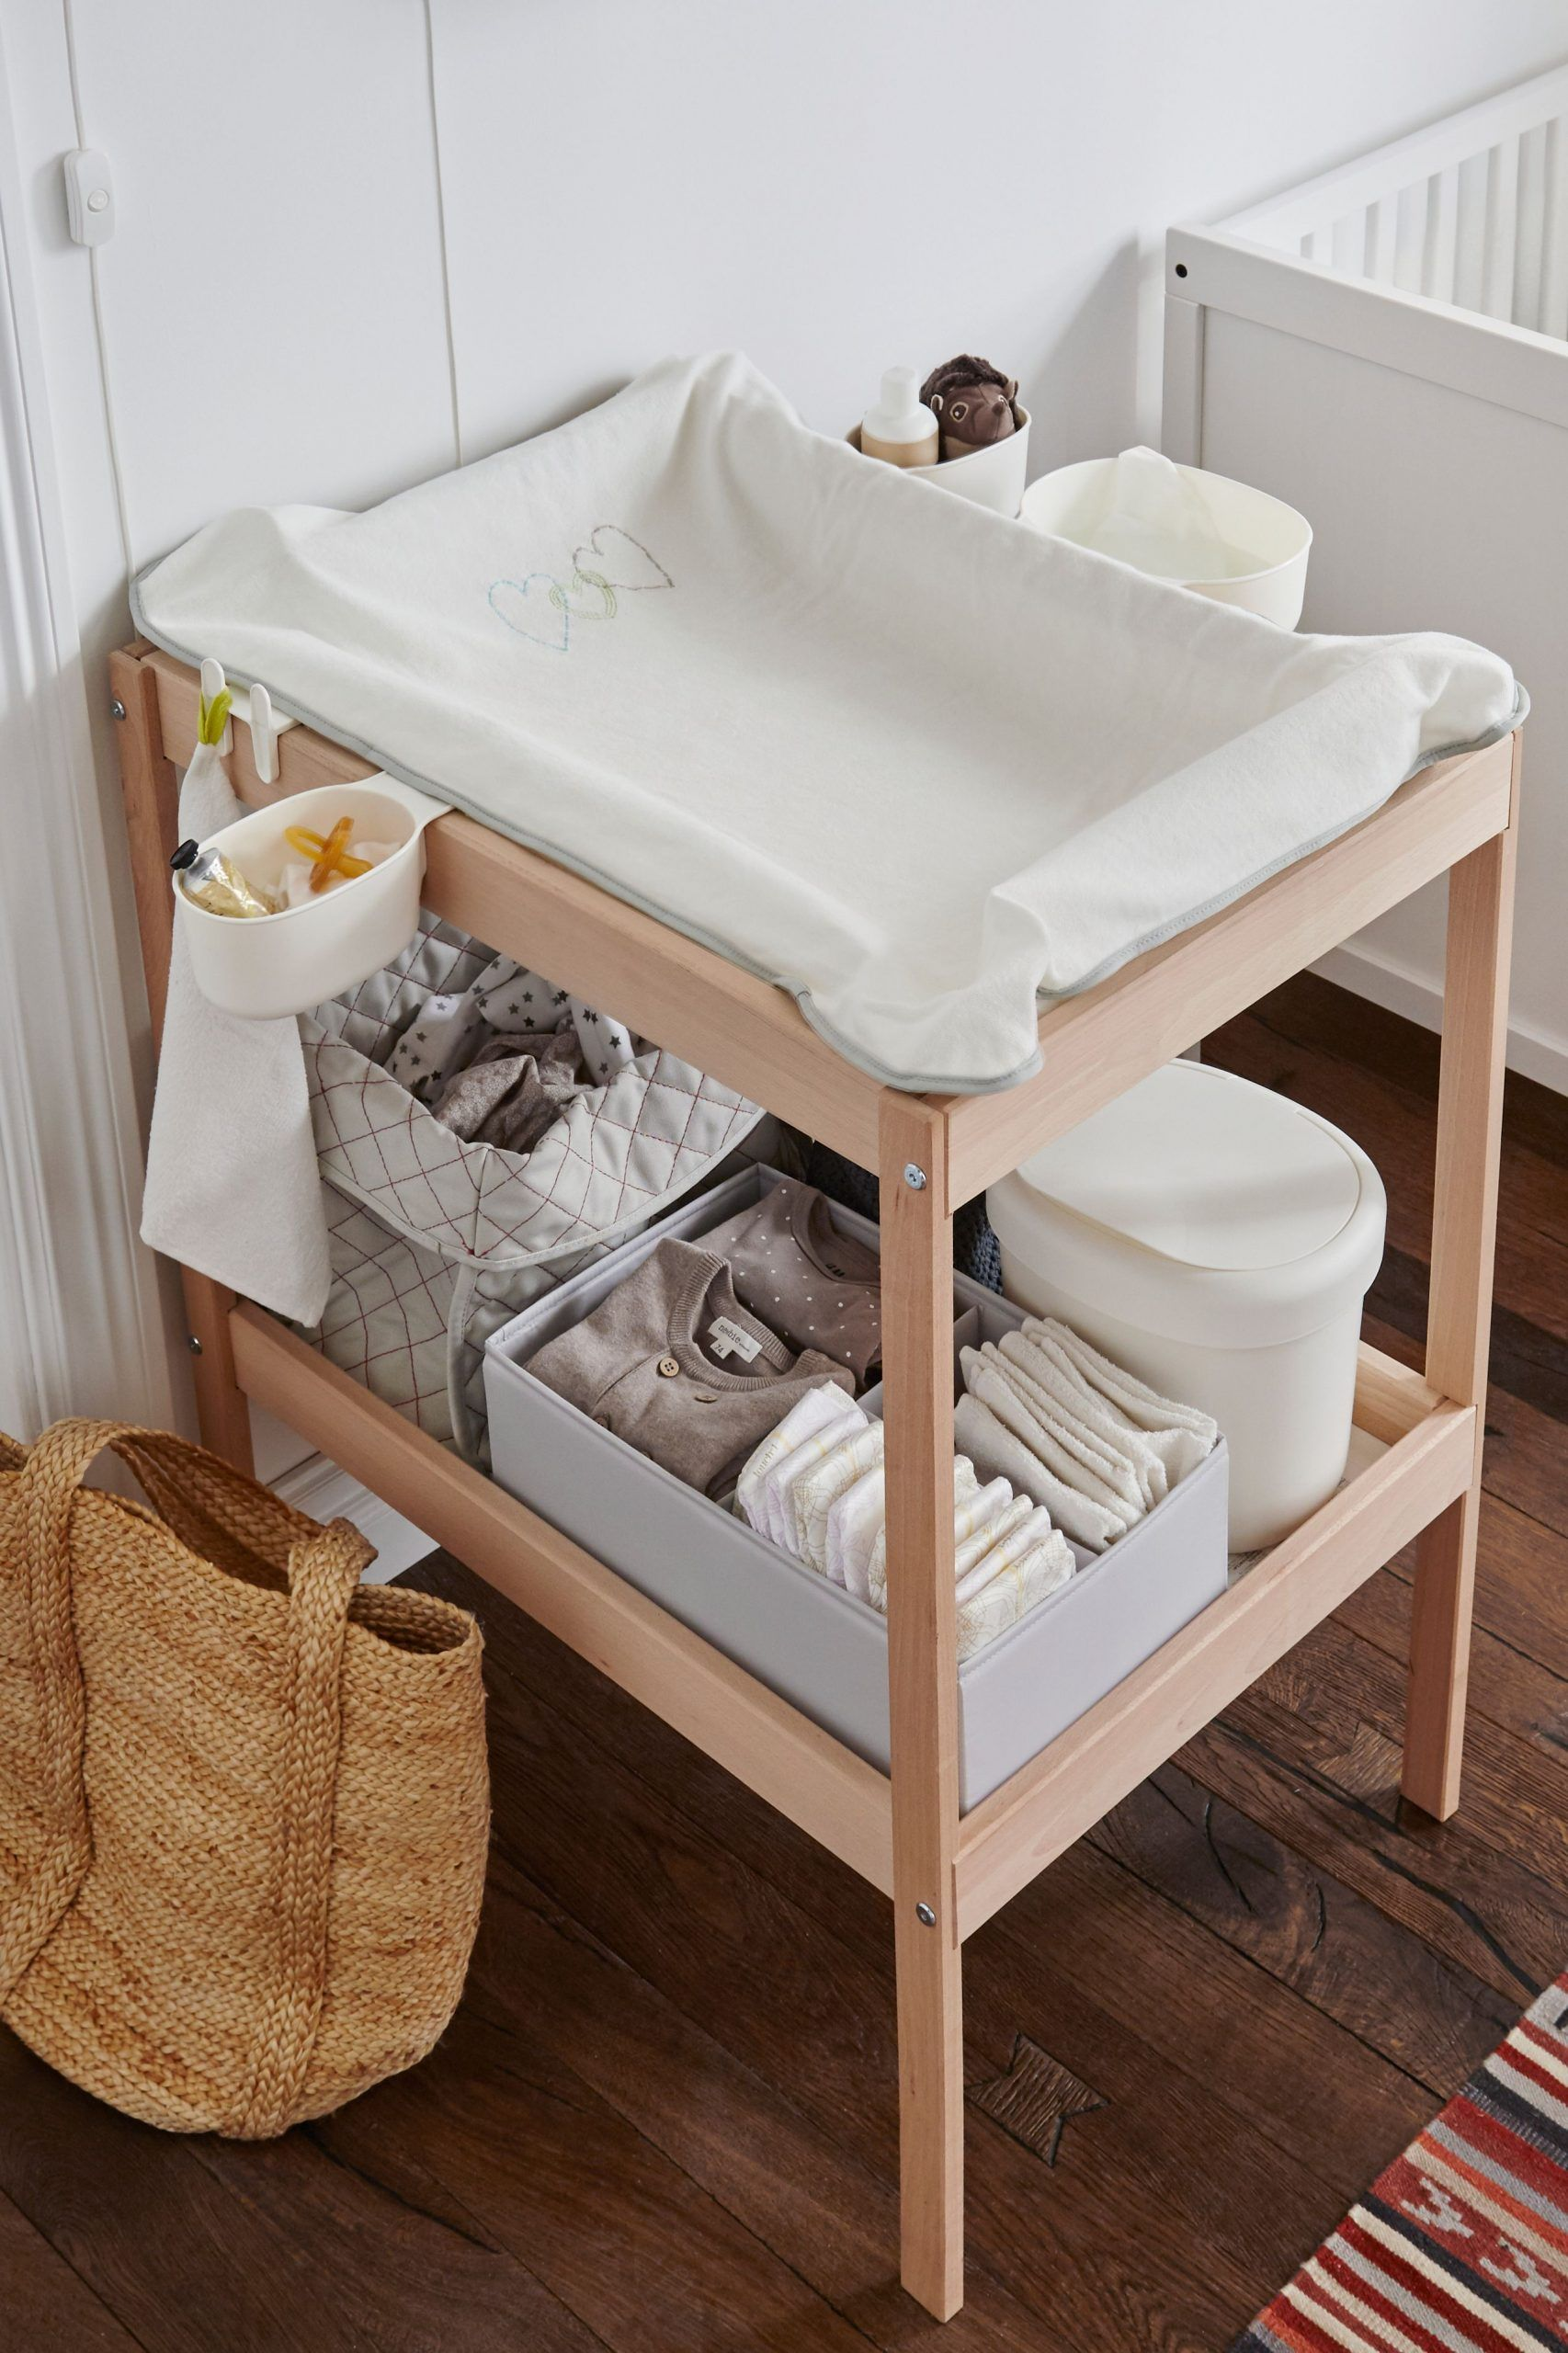 Baby equipment for the baby room#baby #equipment #room in 11